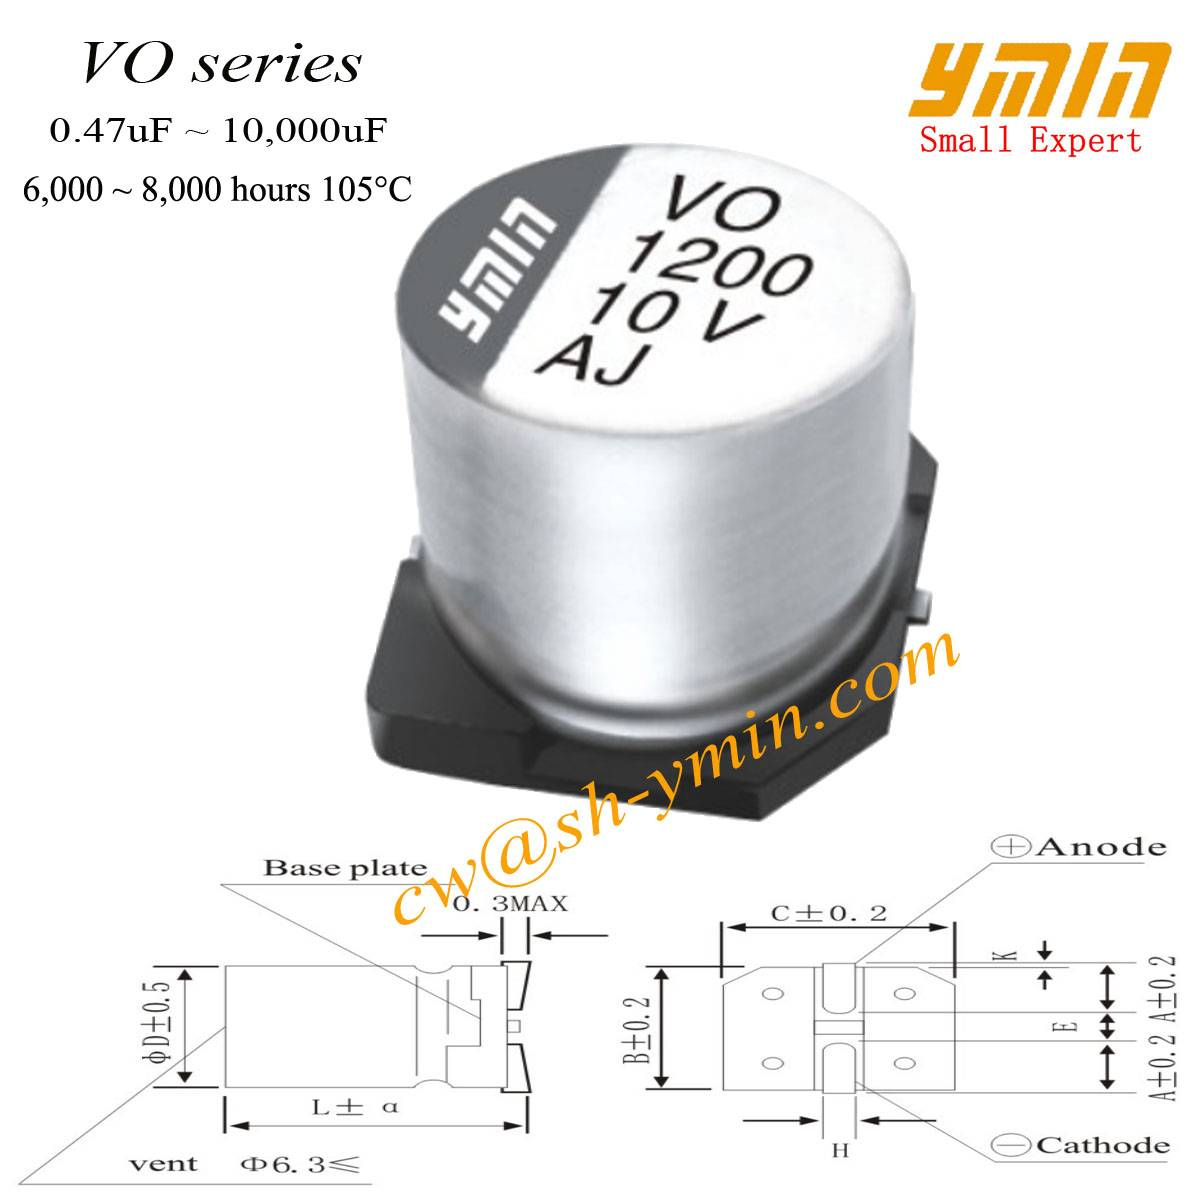 Lighting SMD Capacitor SMD Electrolytic Capacitor for General Purpose RoHS Compliant